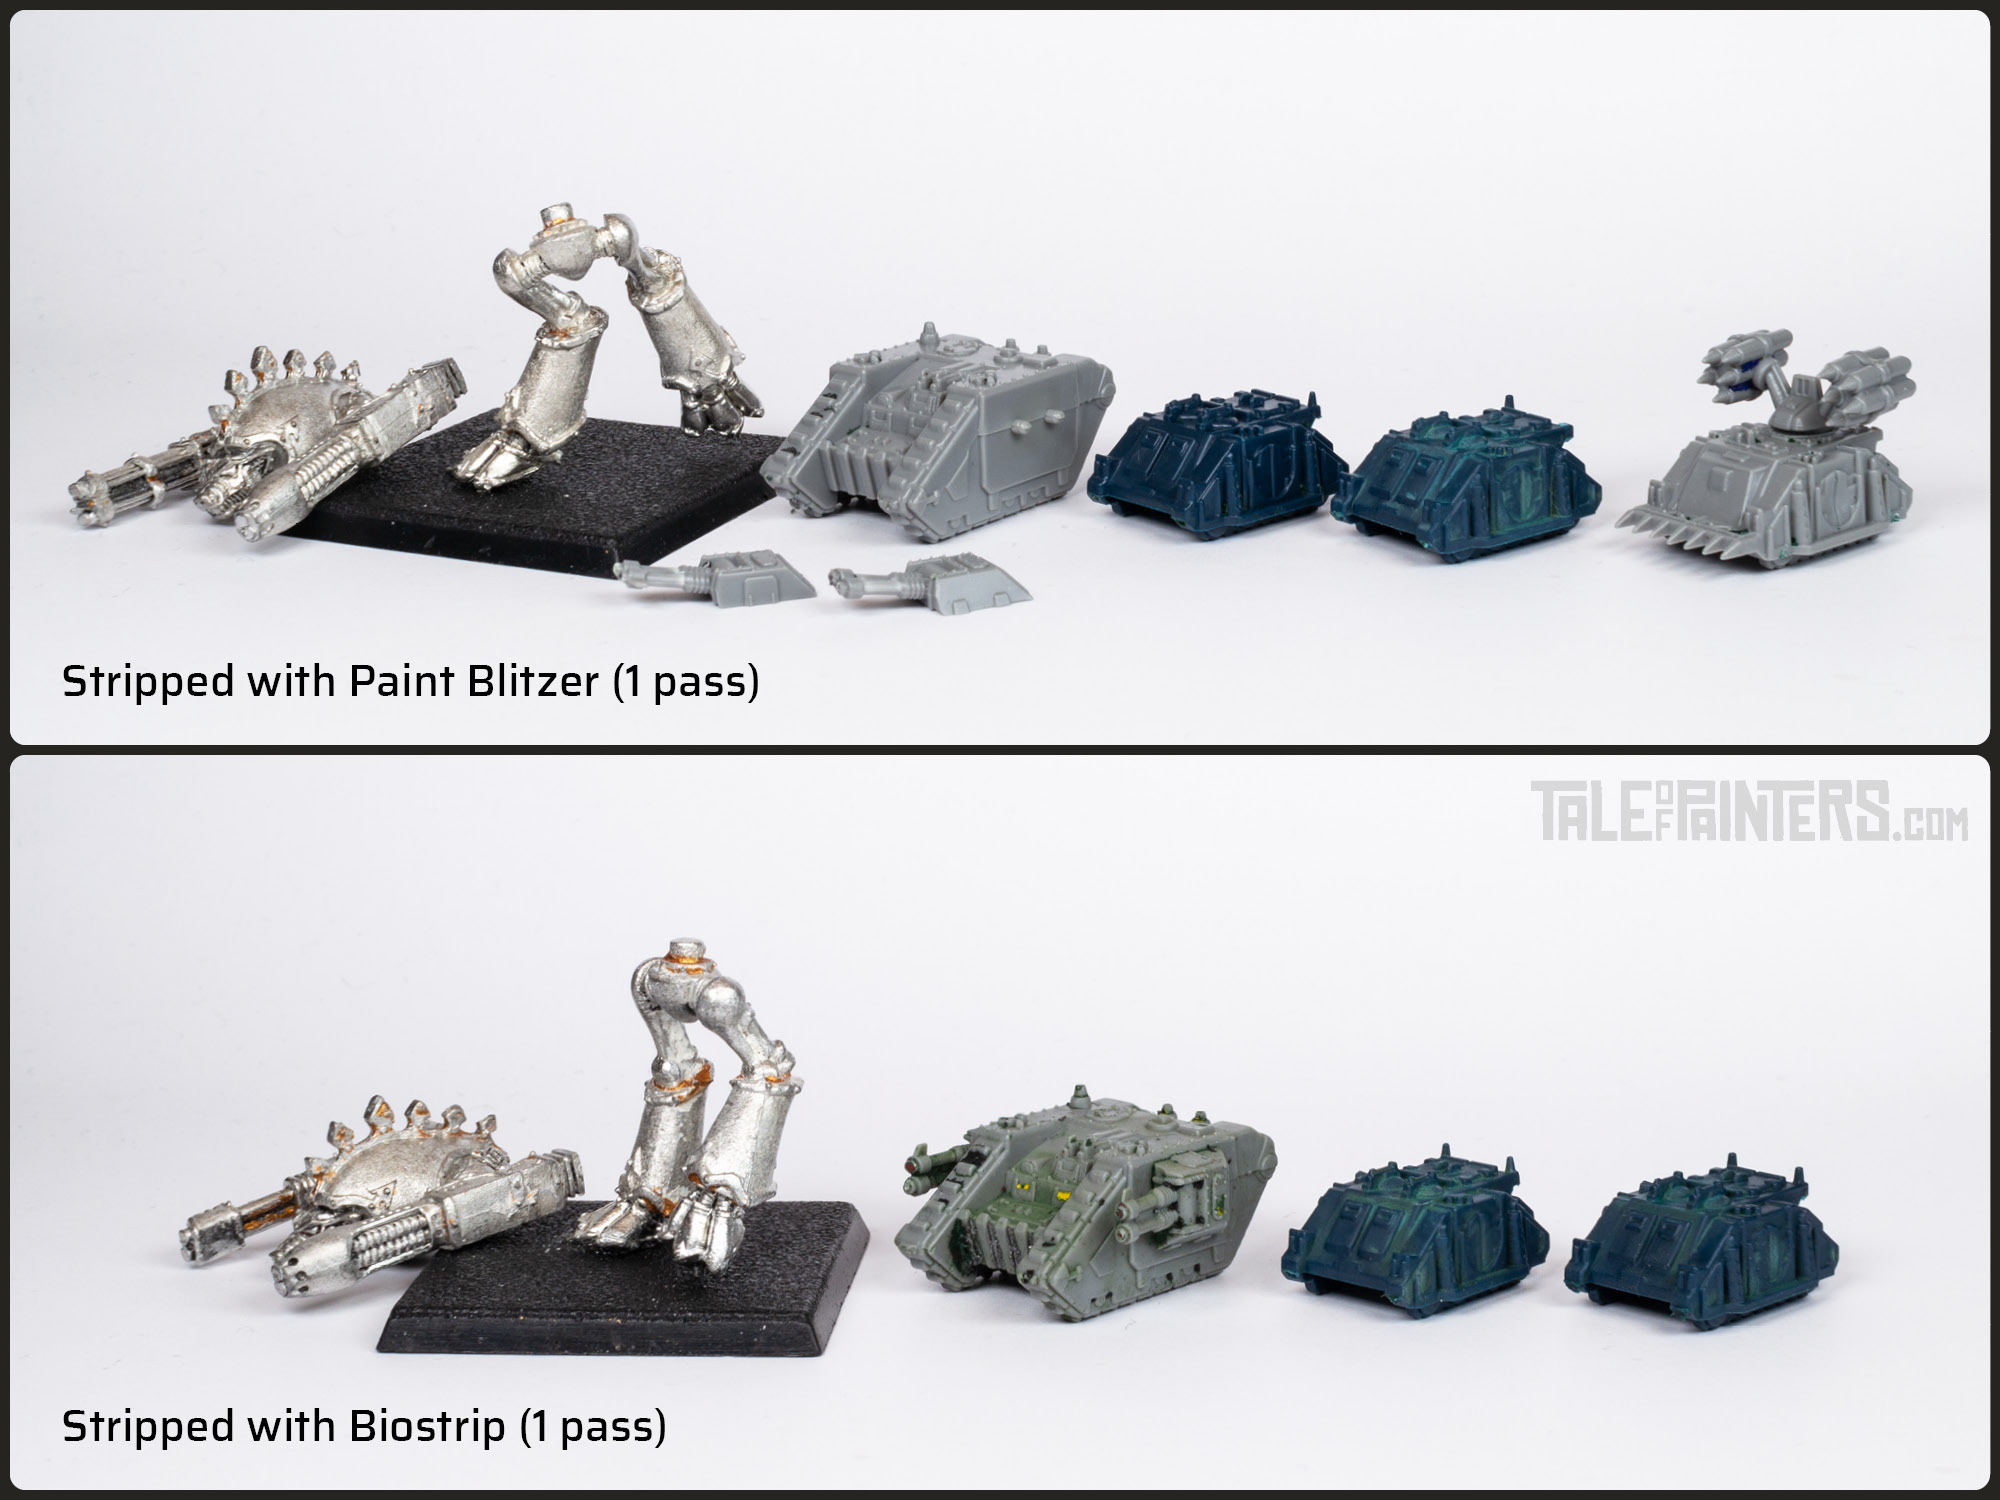 Comparison between Epic 40.000 models stripped with Biostrip and Paint Blitzer